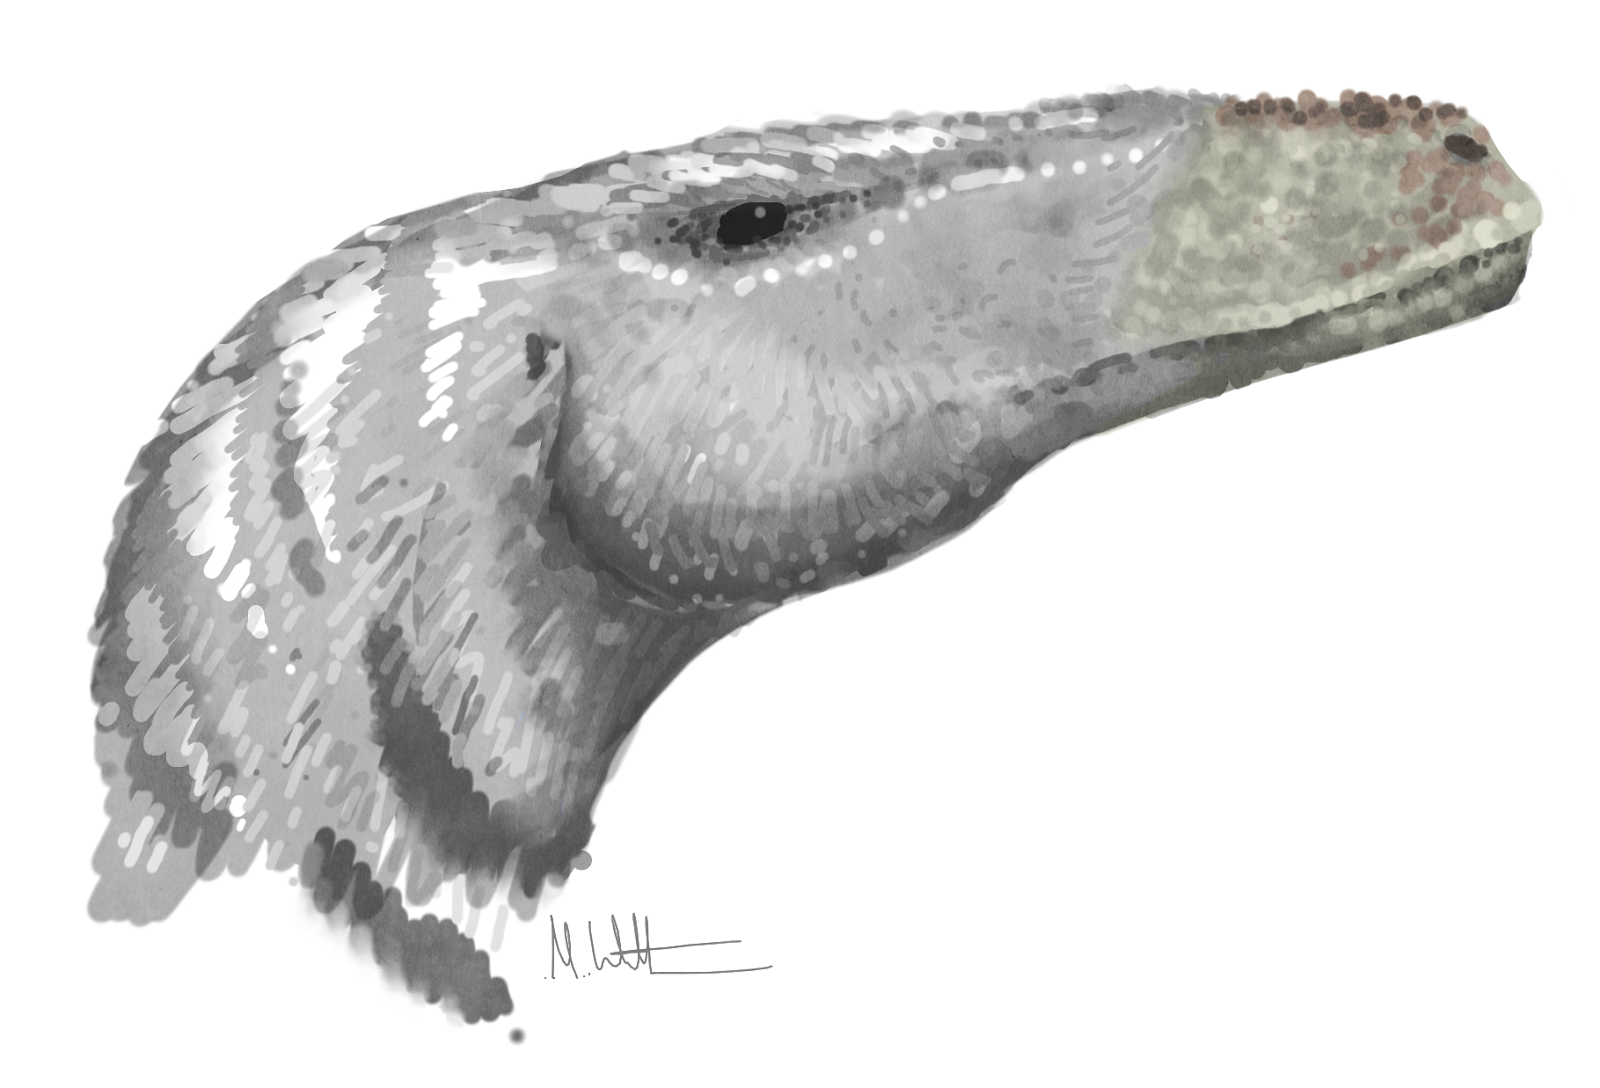 Mark Wittoncom Blog Baldeaglediagram Eagle Skeleton Drawing Bald Study 01 By Baron Quick Sketch Of Deinonychus Antirrhopus With Expanded Bone Puncturing Jaw Muscles A Requirement Having Bite As Strong Modern Alligator